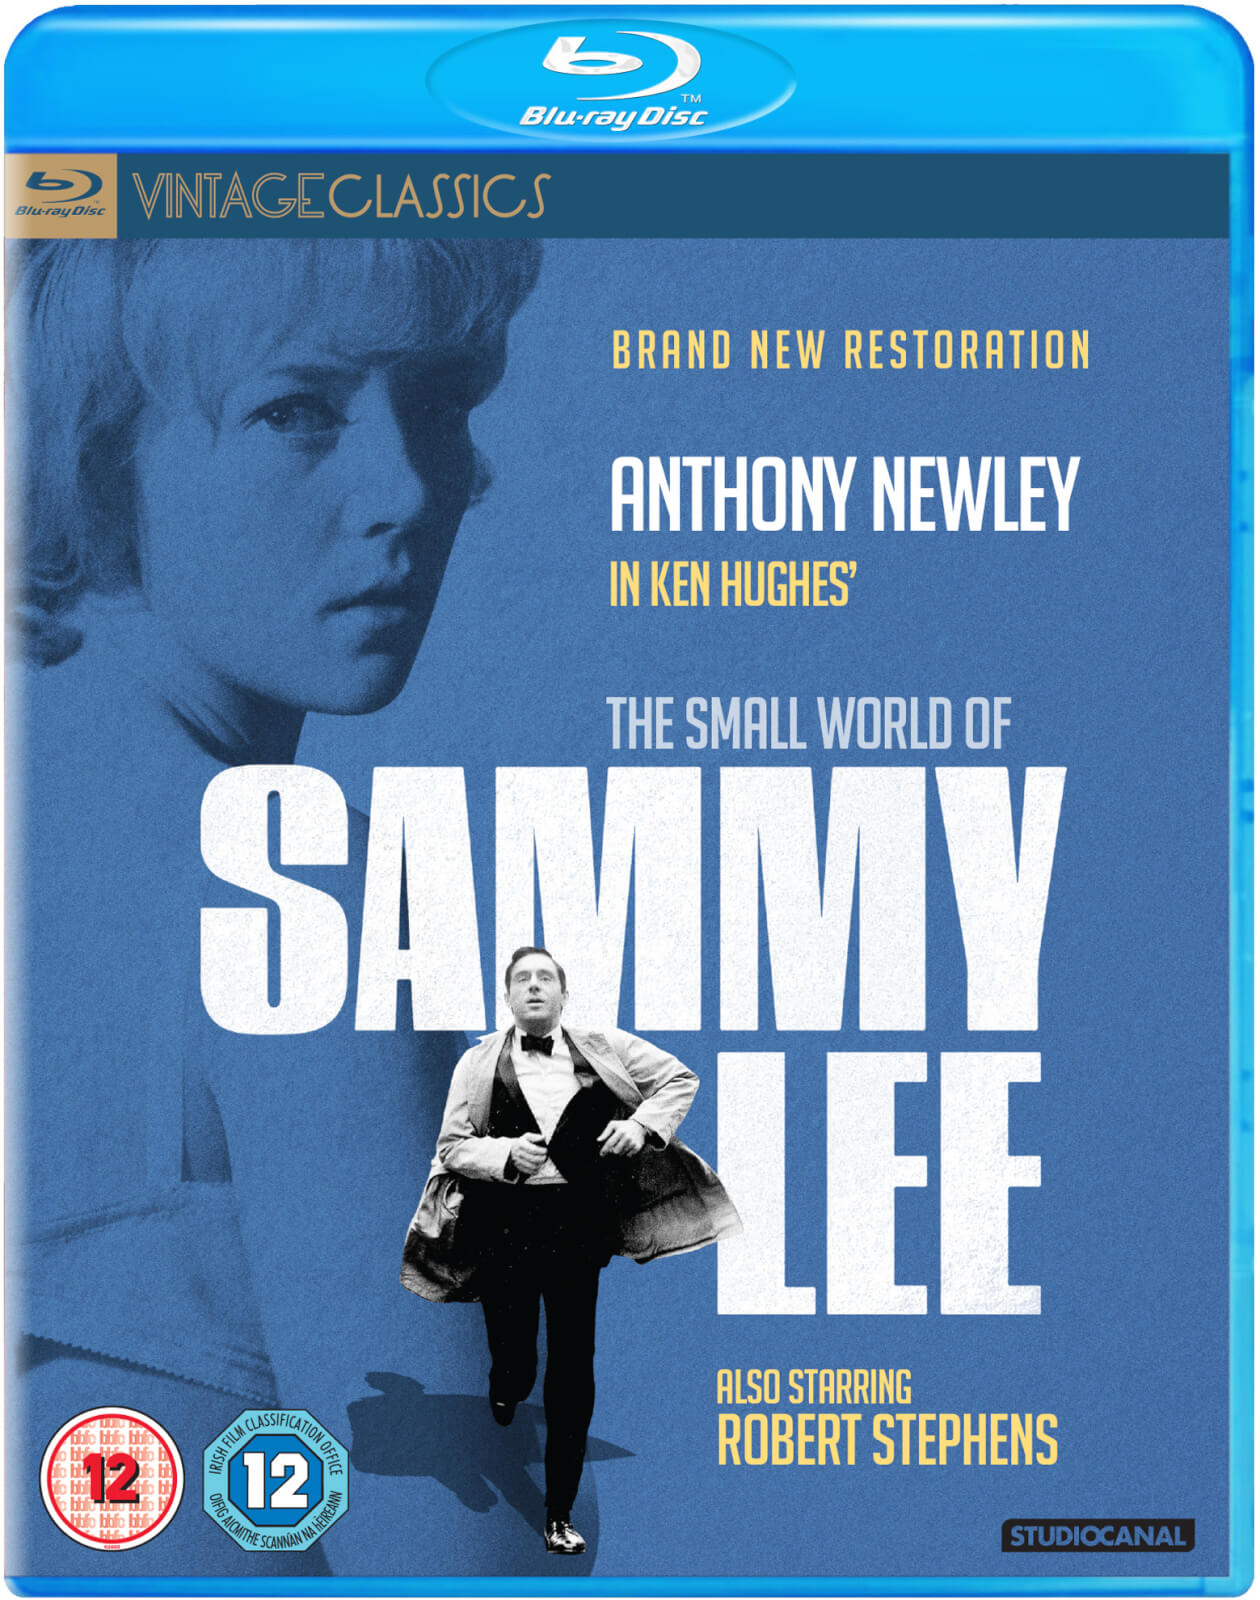 The Small World Of Sammy Lee (Digitally Restored)